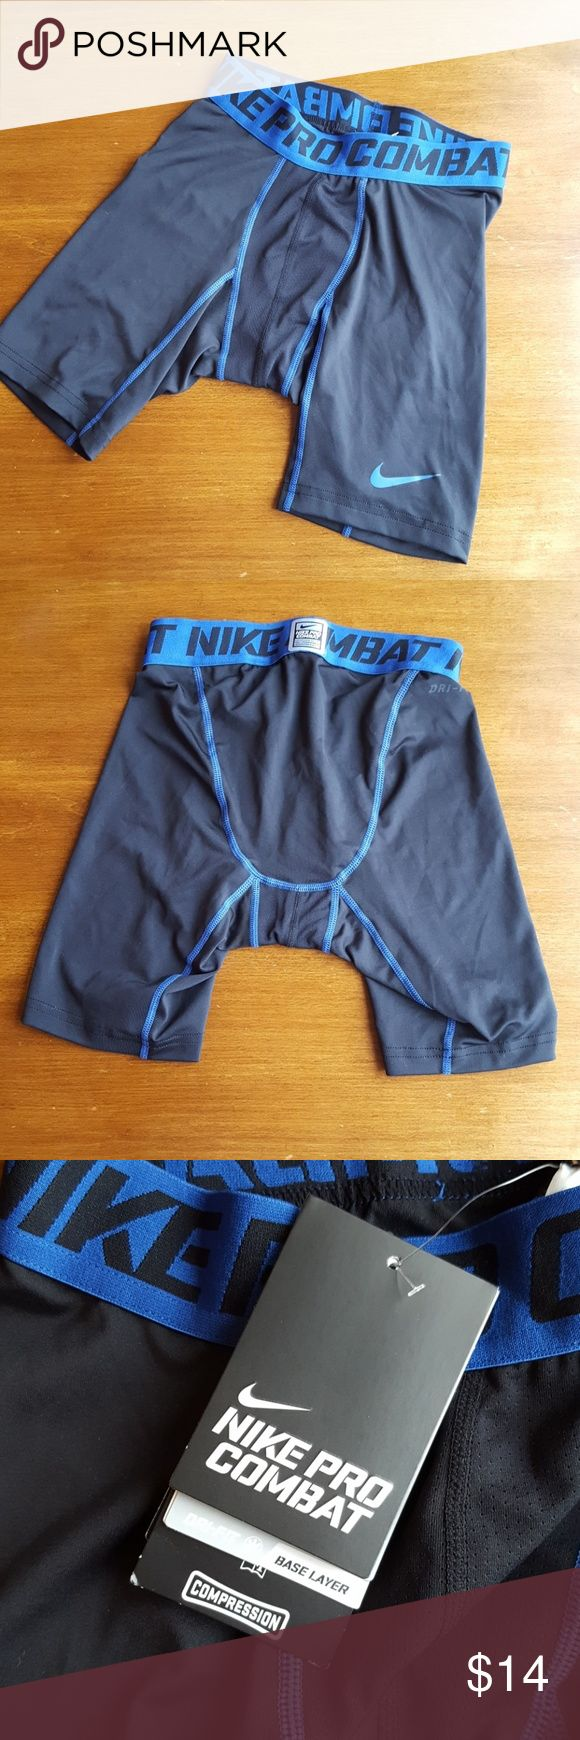 Nike Pro Combat compression shorts NWT Nike black with royal blue contrasting color compressions. Nike Underwear & Socks Boxer Briefs